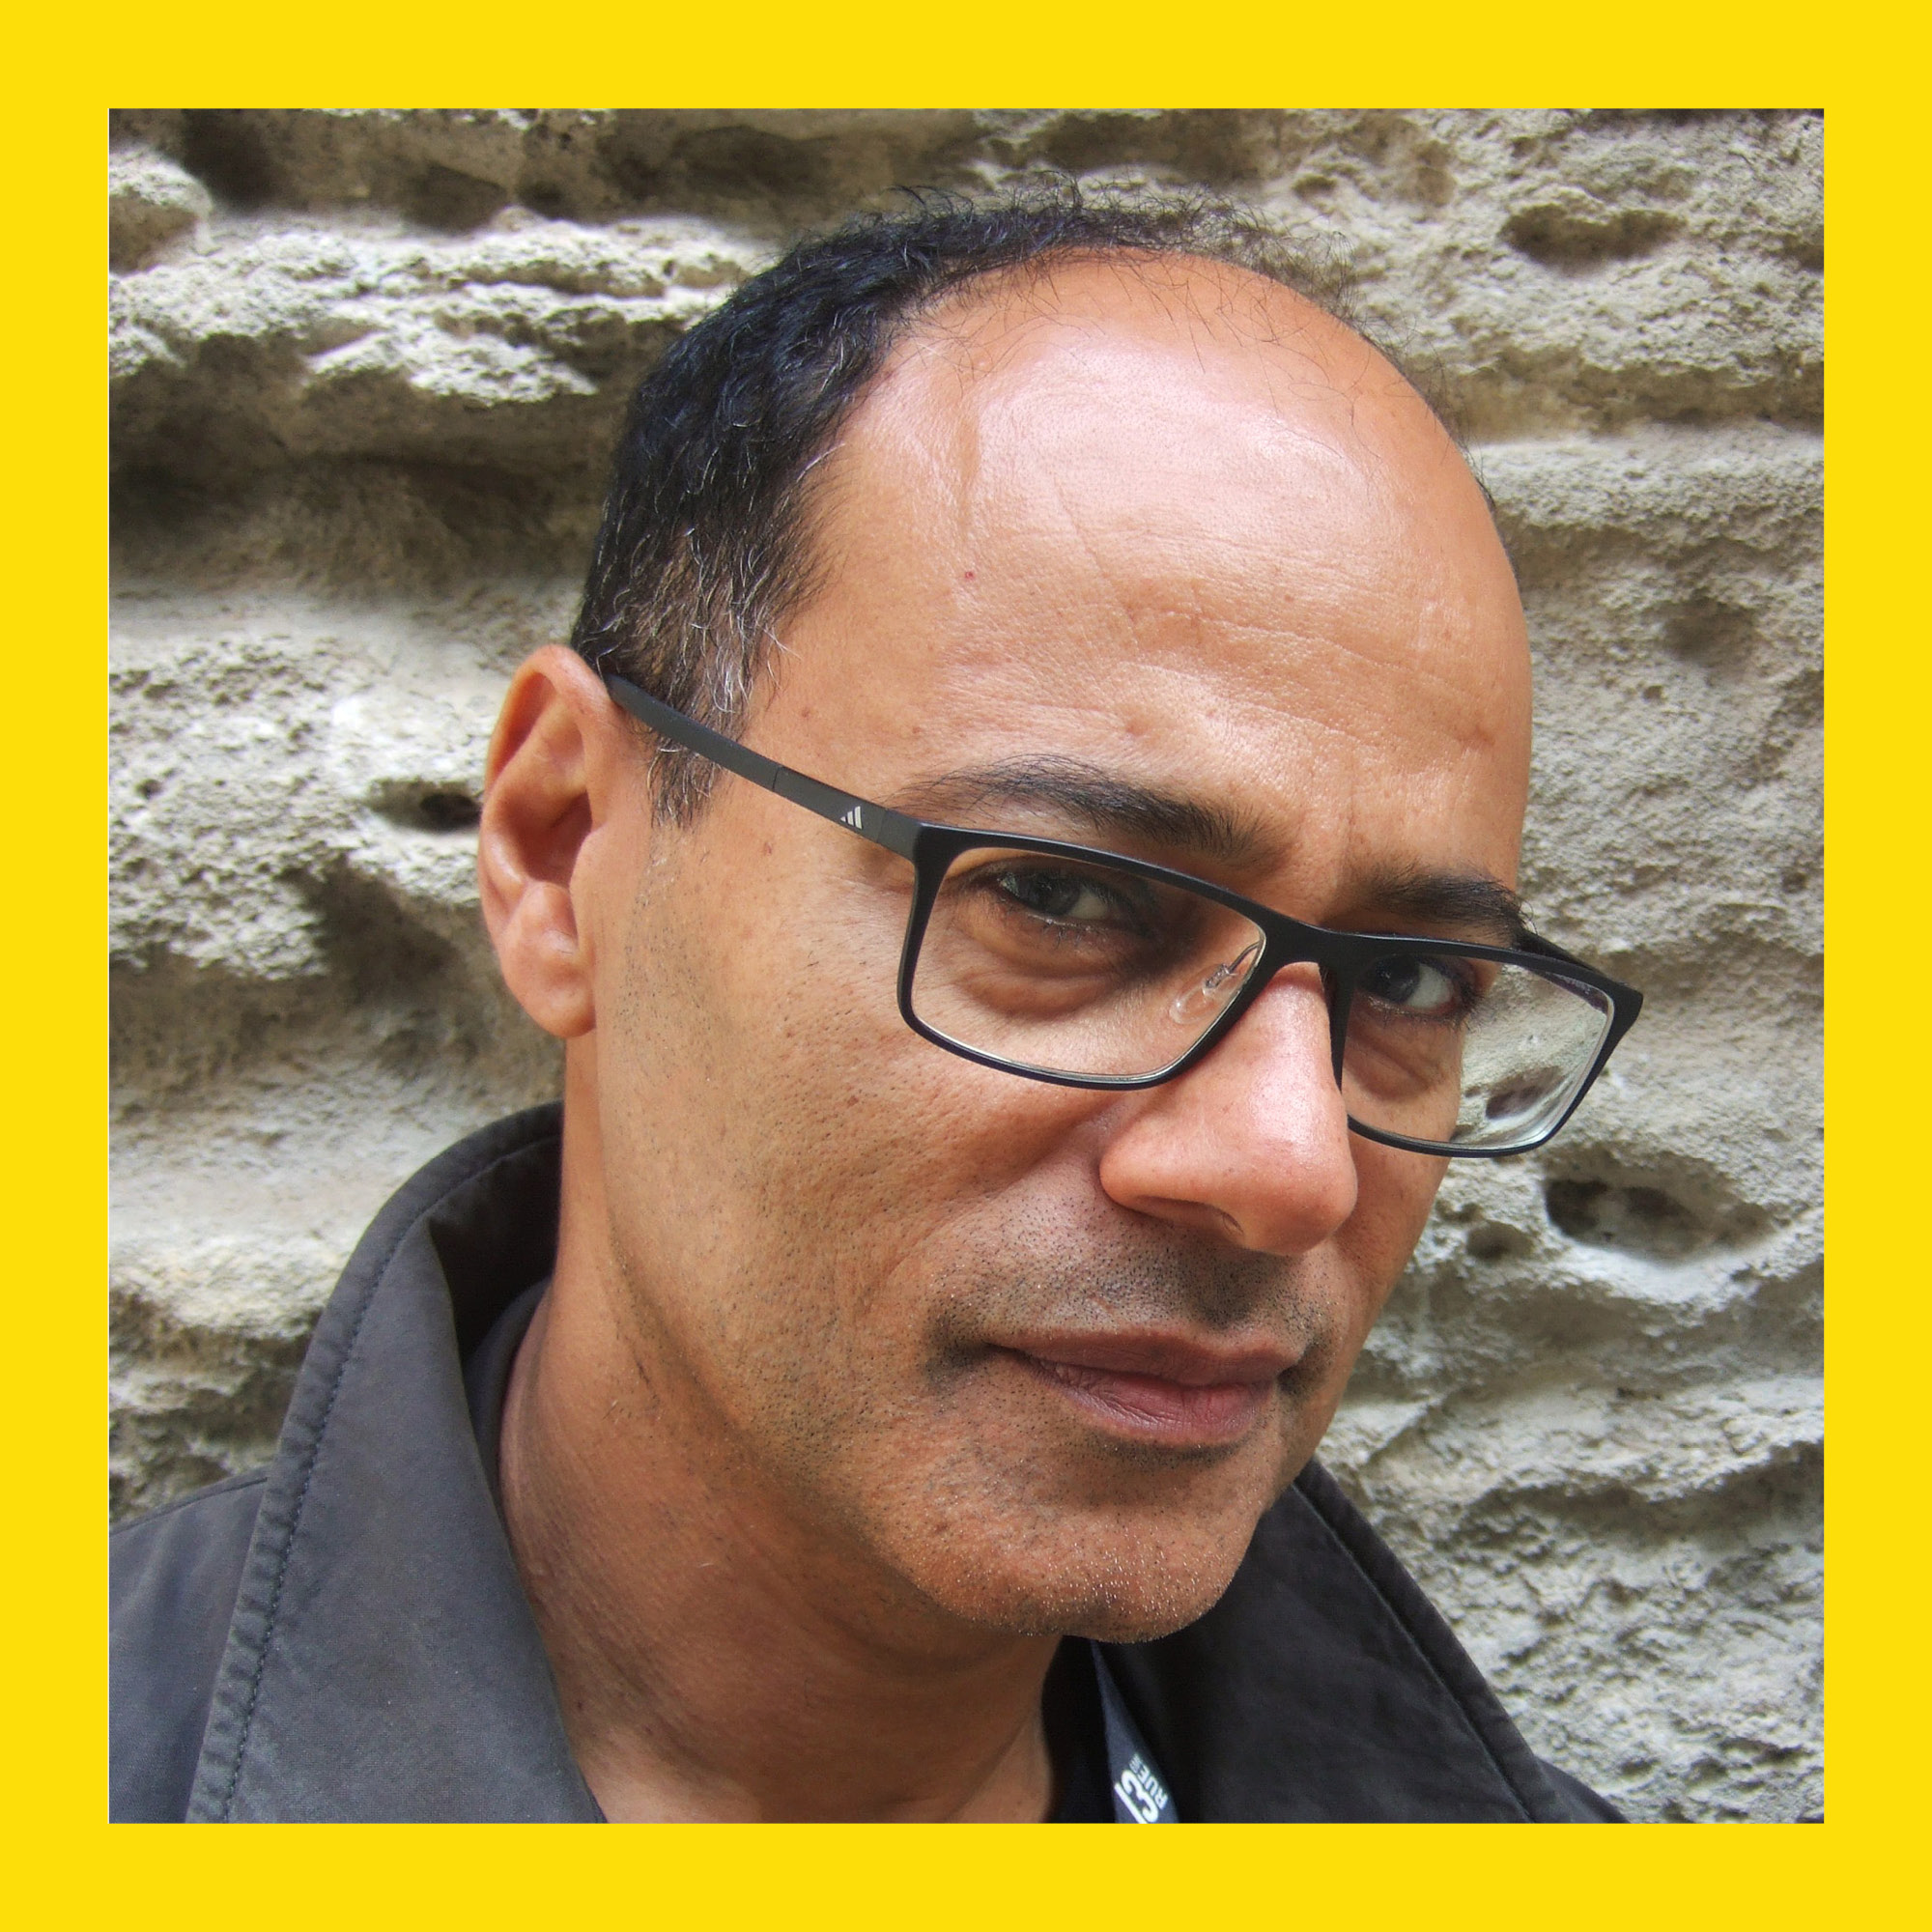 Parker Bilal was born in London and has since lived all over the place. He is the author of six novels in the Makana series, set in Cairo in the decade from 9/11 to (and just beyond) the Arab Spring of 2011. He is now working on a series set in London that begins with The Divinities which introduces two new characters, Cal Drake and Ray Crane. The second novel in the series is due to appear next year. -